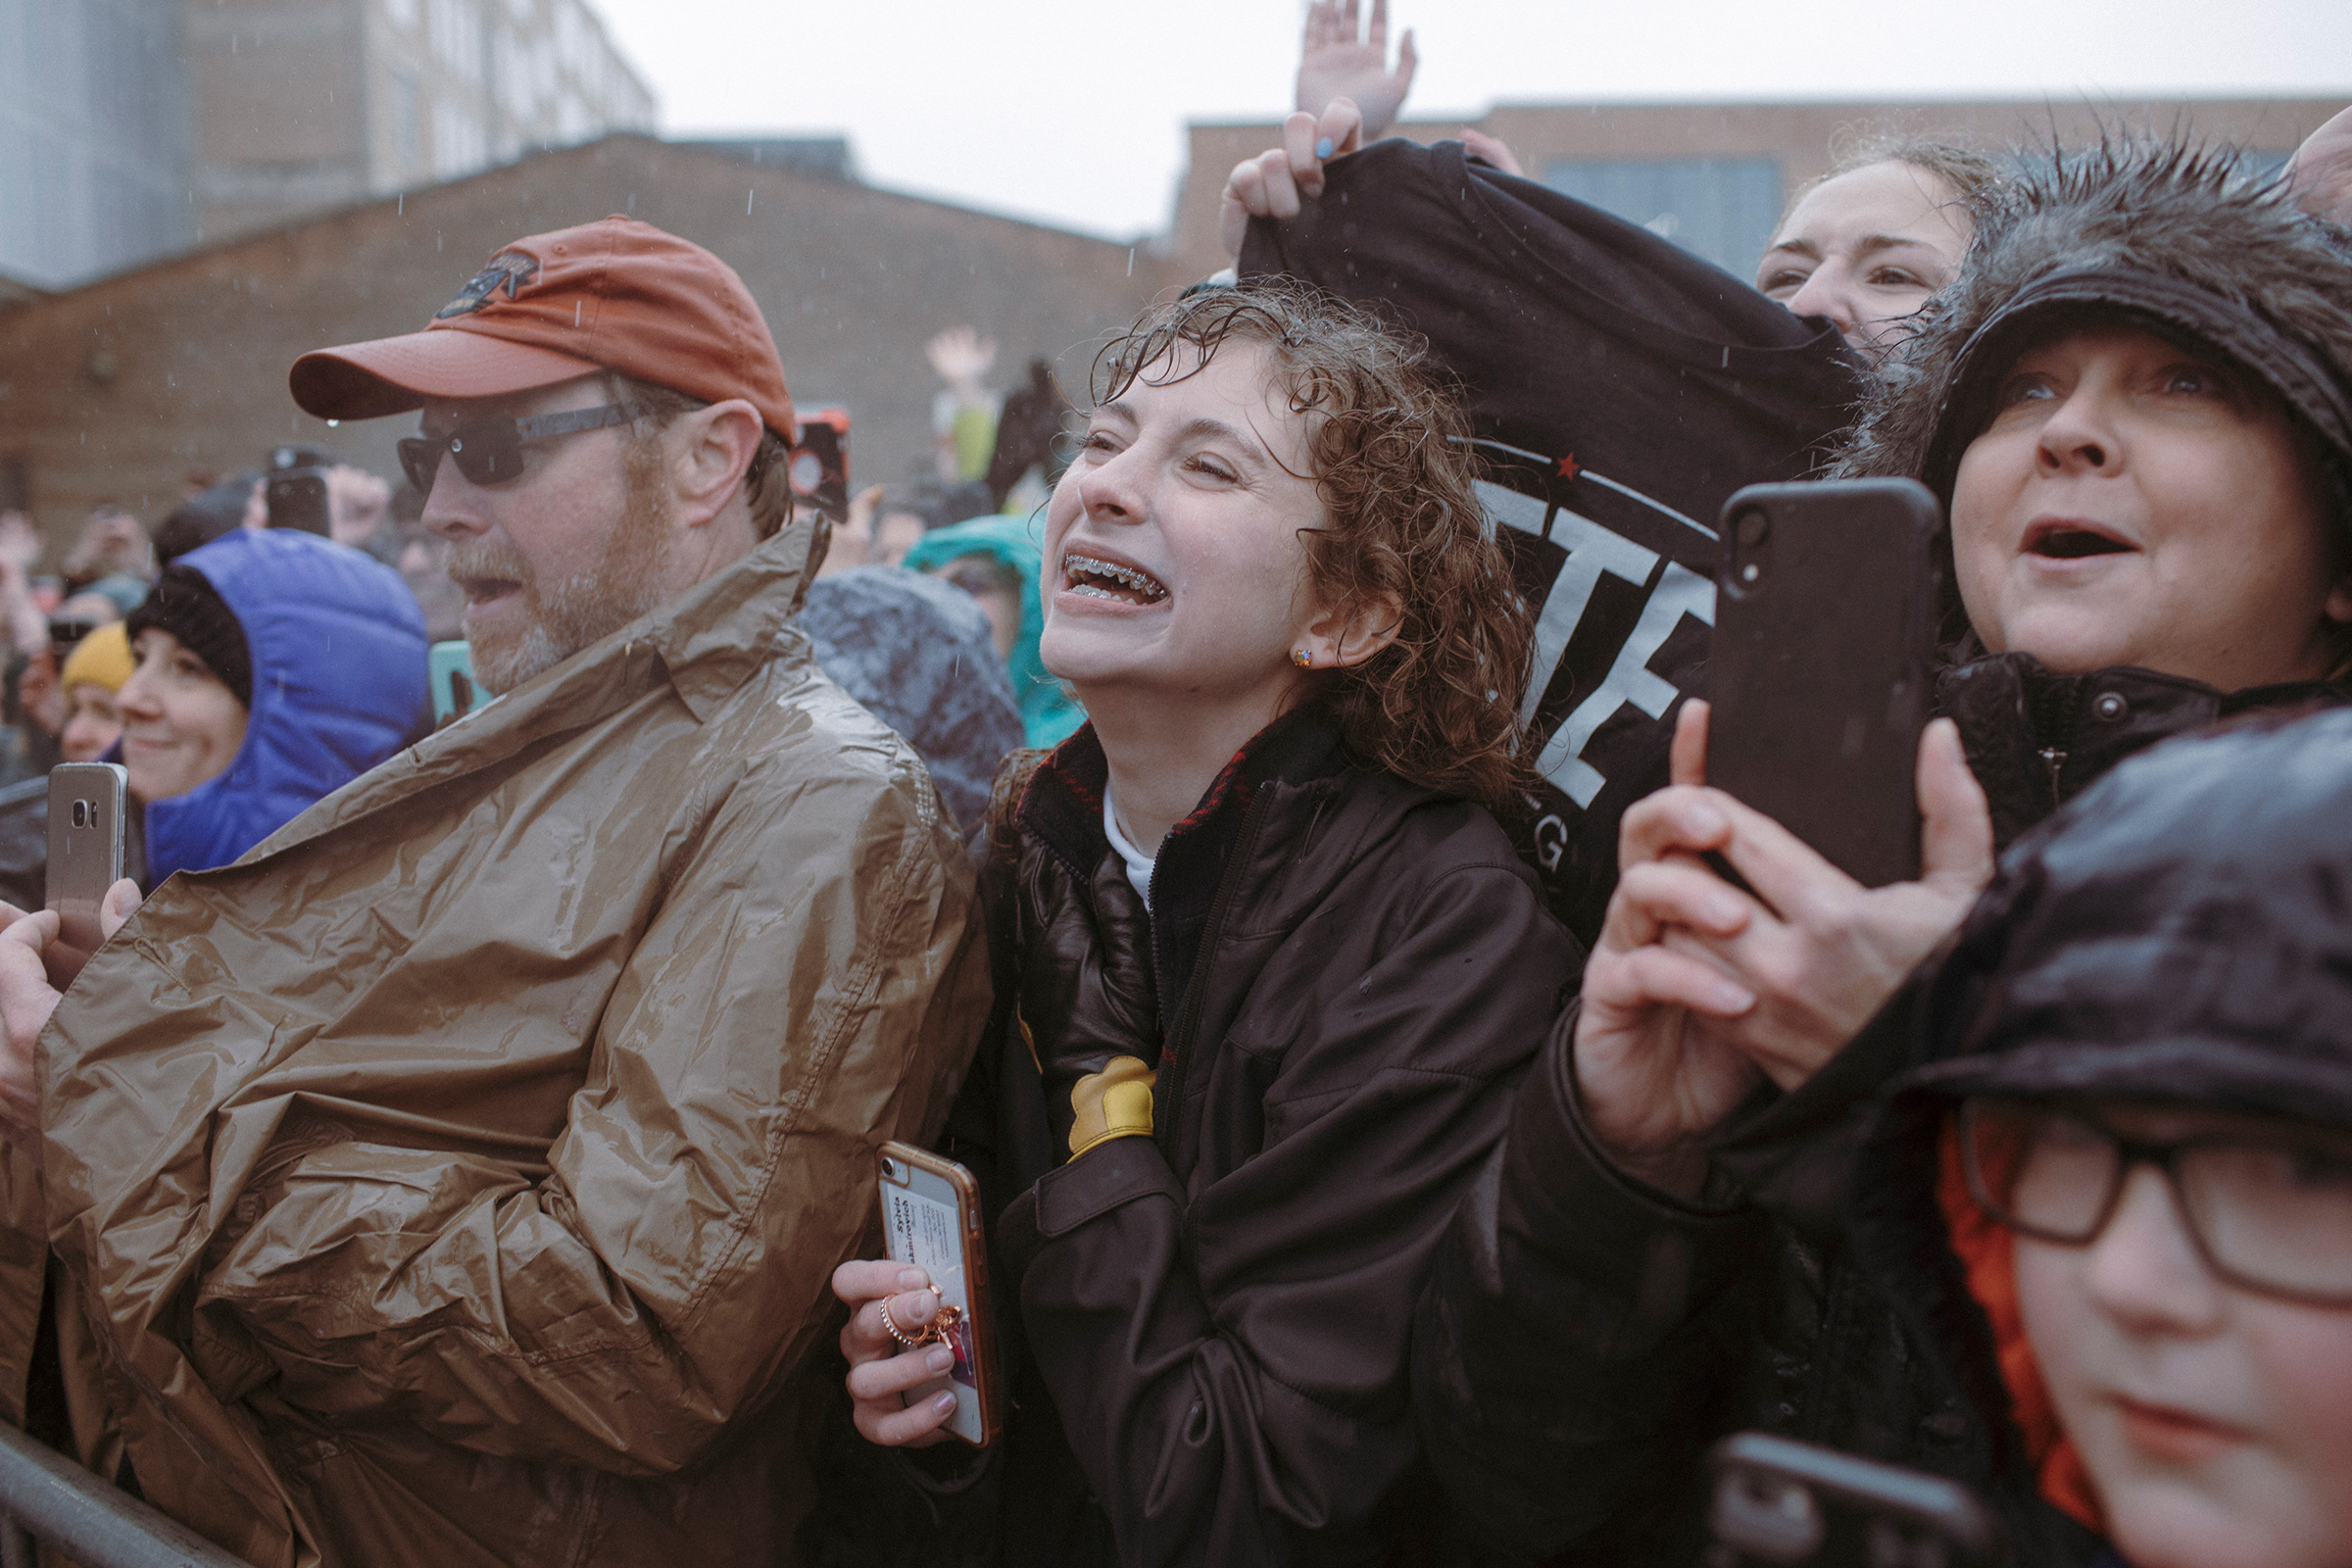 Supporters wait in the rain April 14 for Buttigieg's presidential campaign announcement in South Bend.